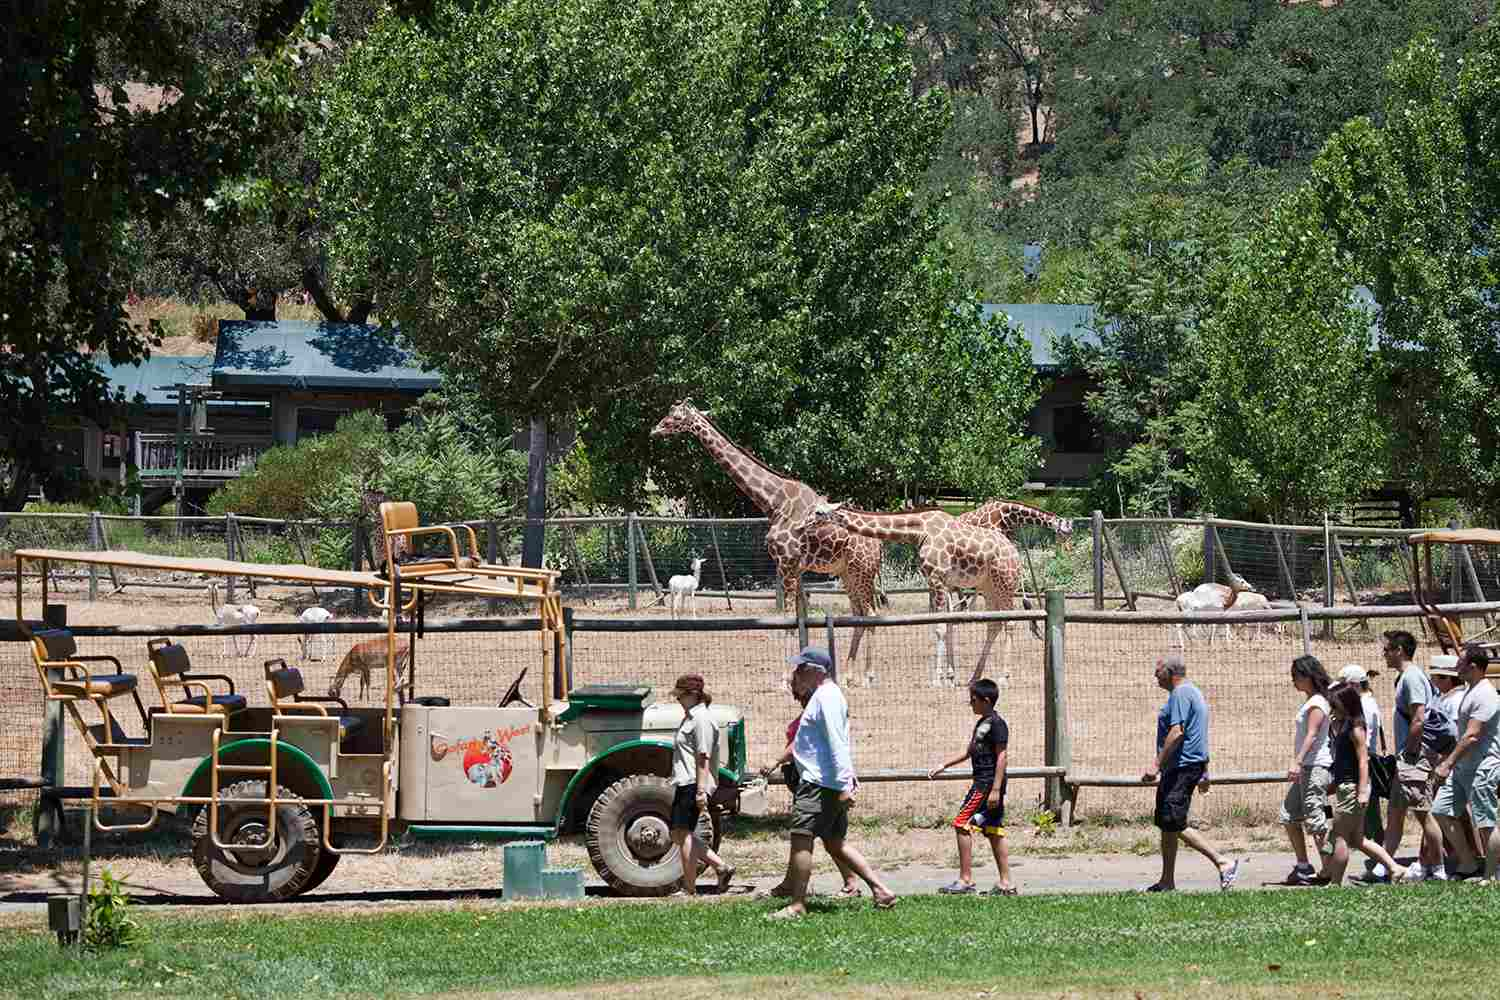 Visitors touring Safari West wildlife preserve with giraffes and dama gazelles in background